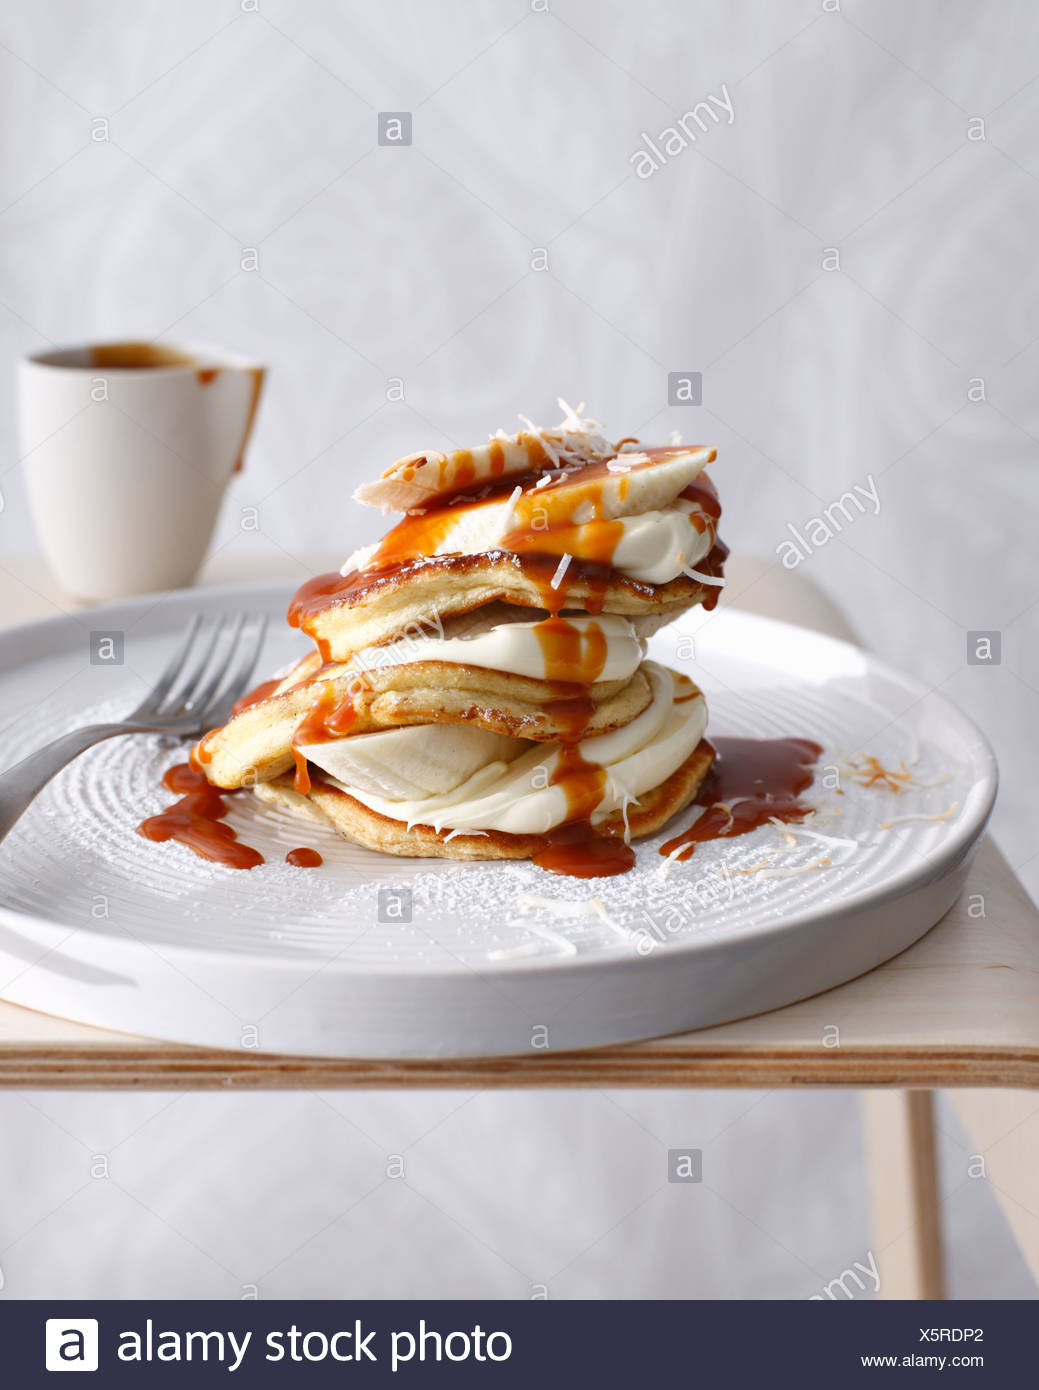 Plate of coconut pancakes with cream - Stock Image